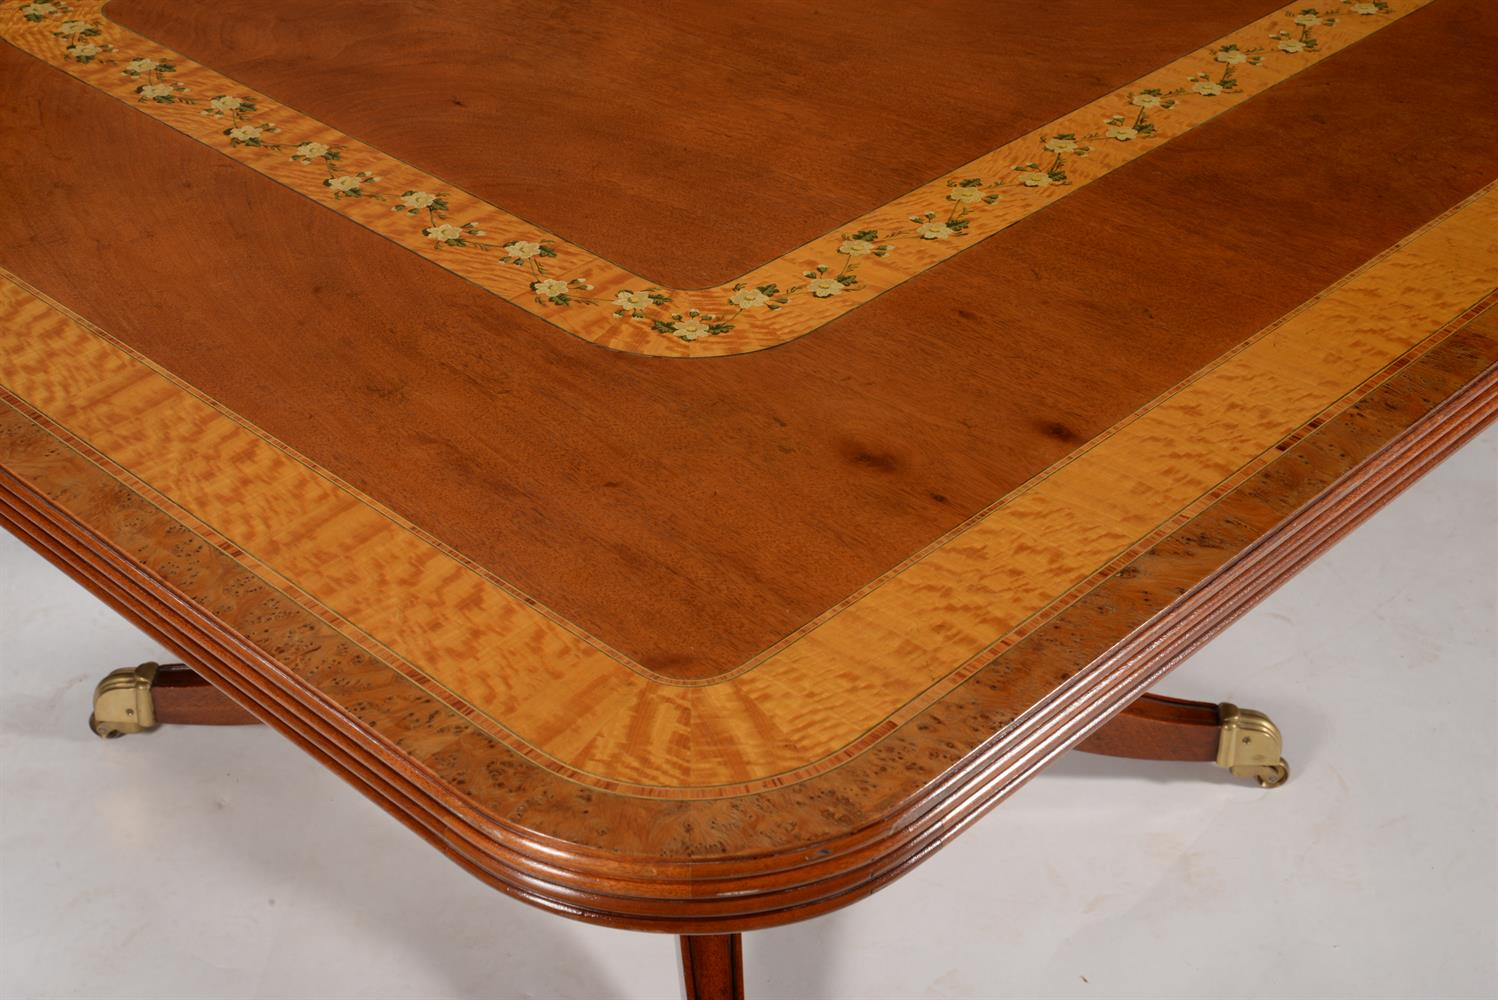 Y A mahogany and satinwood crossbanded twin pedestal dining table by Restall - Image 2 of 4